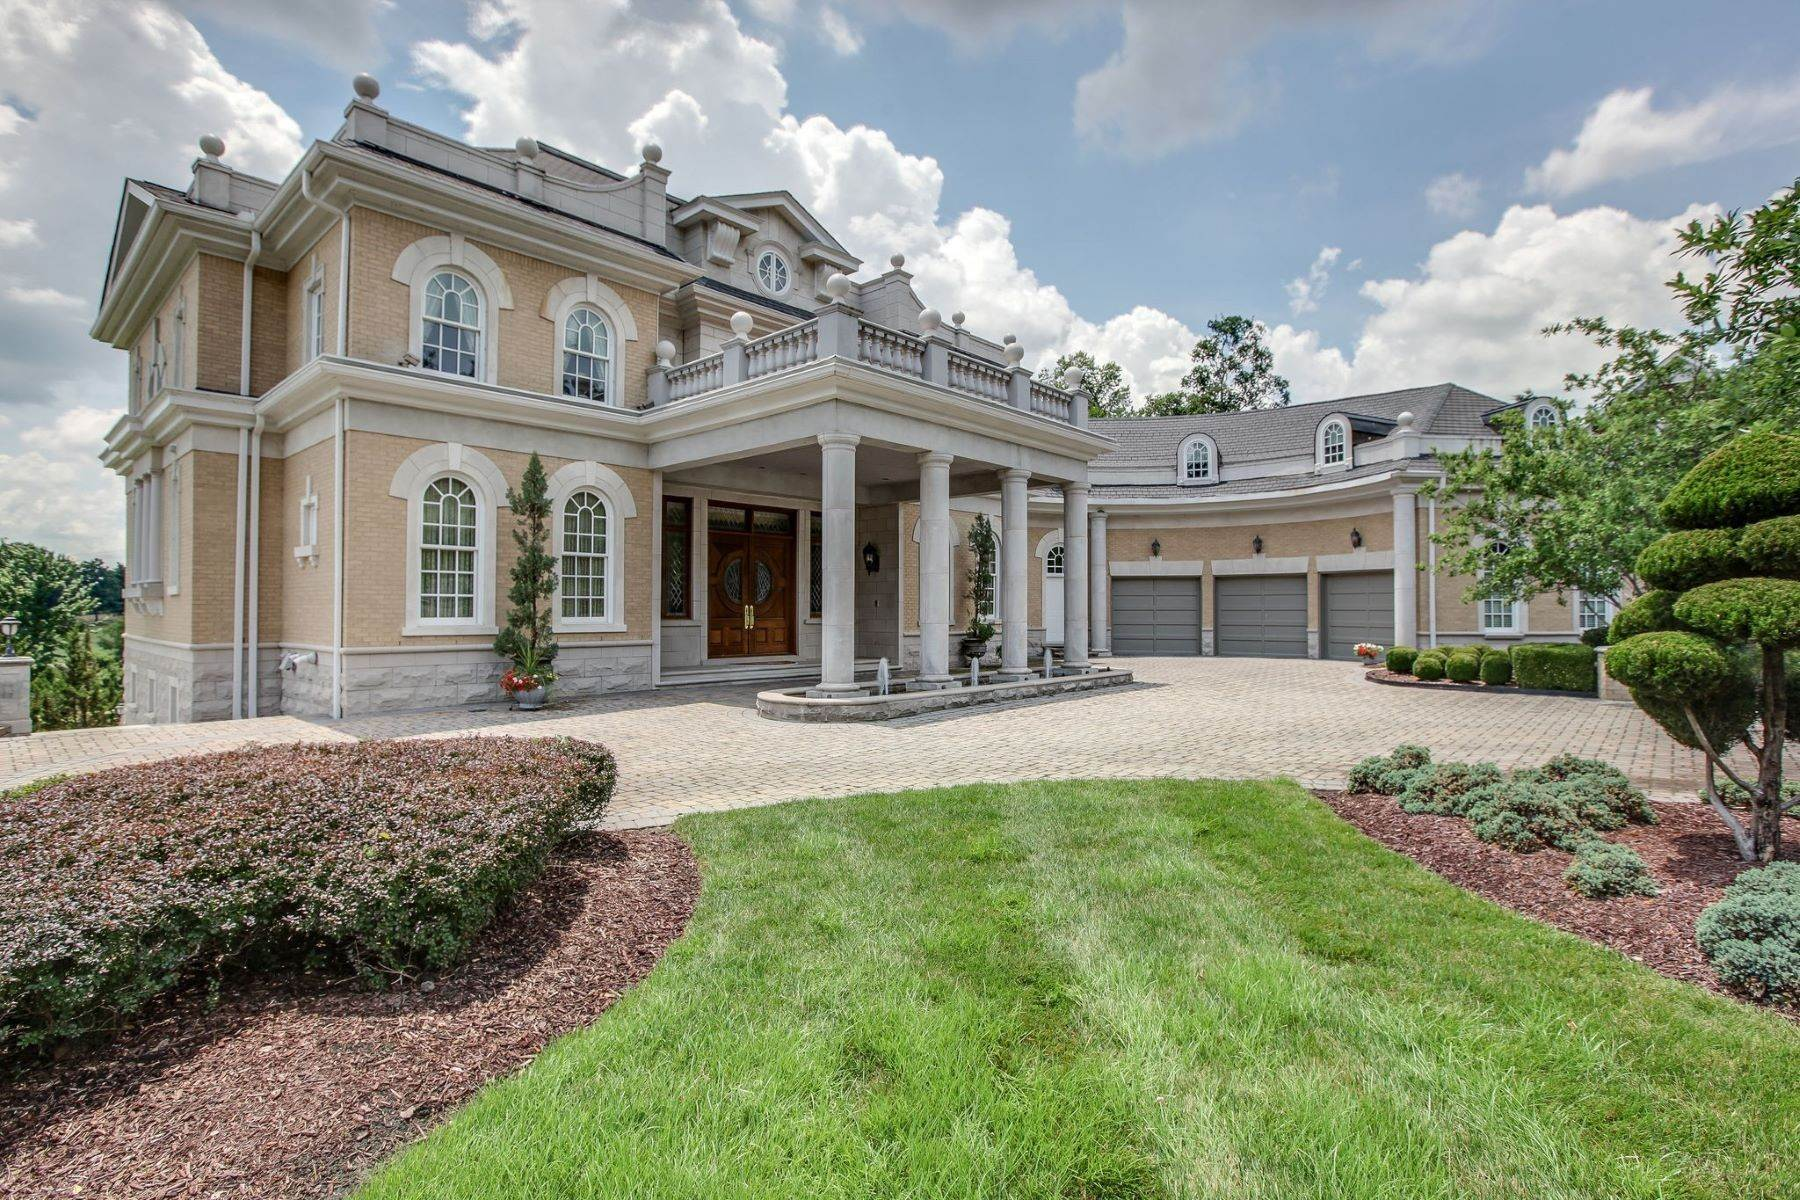 Single Family Homes for Sale at 2 Carmel Ln, Brentwood, Tn, 37027 2 Carmel Ln Brentwood, Tennessee 37027 United States